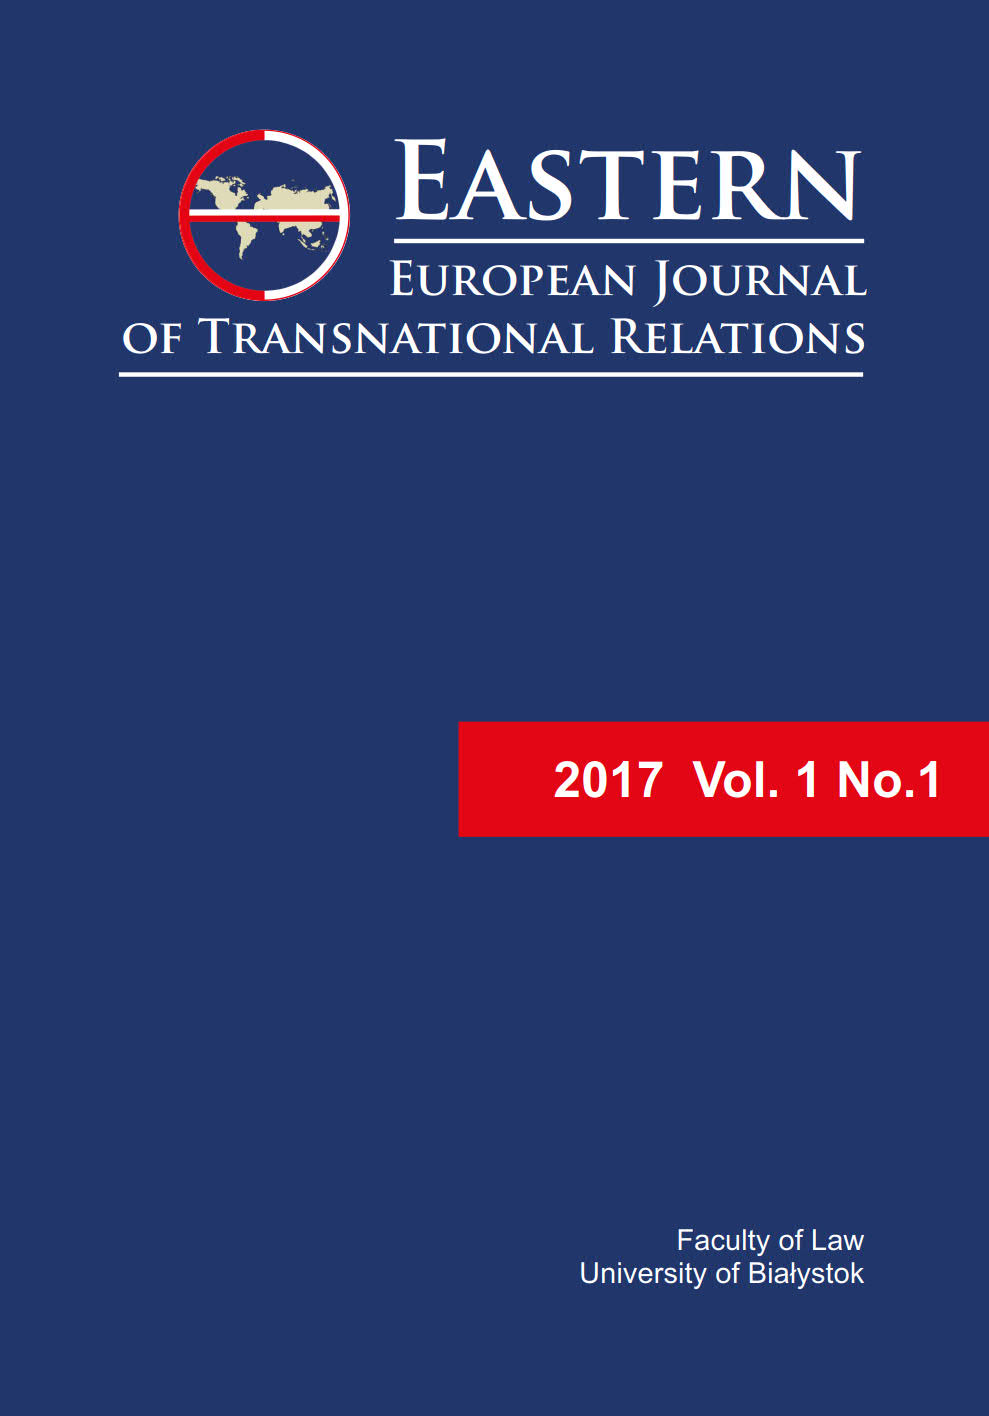 EEJTR 2017 Vol. 1 No. 1 - cover image